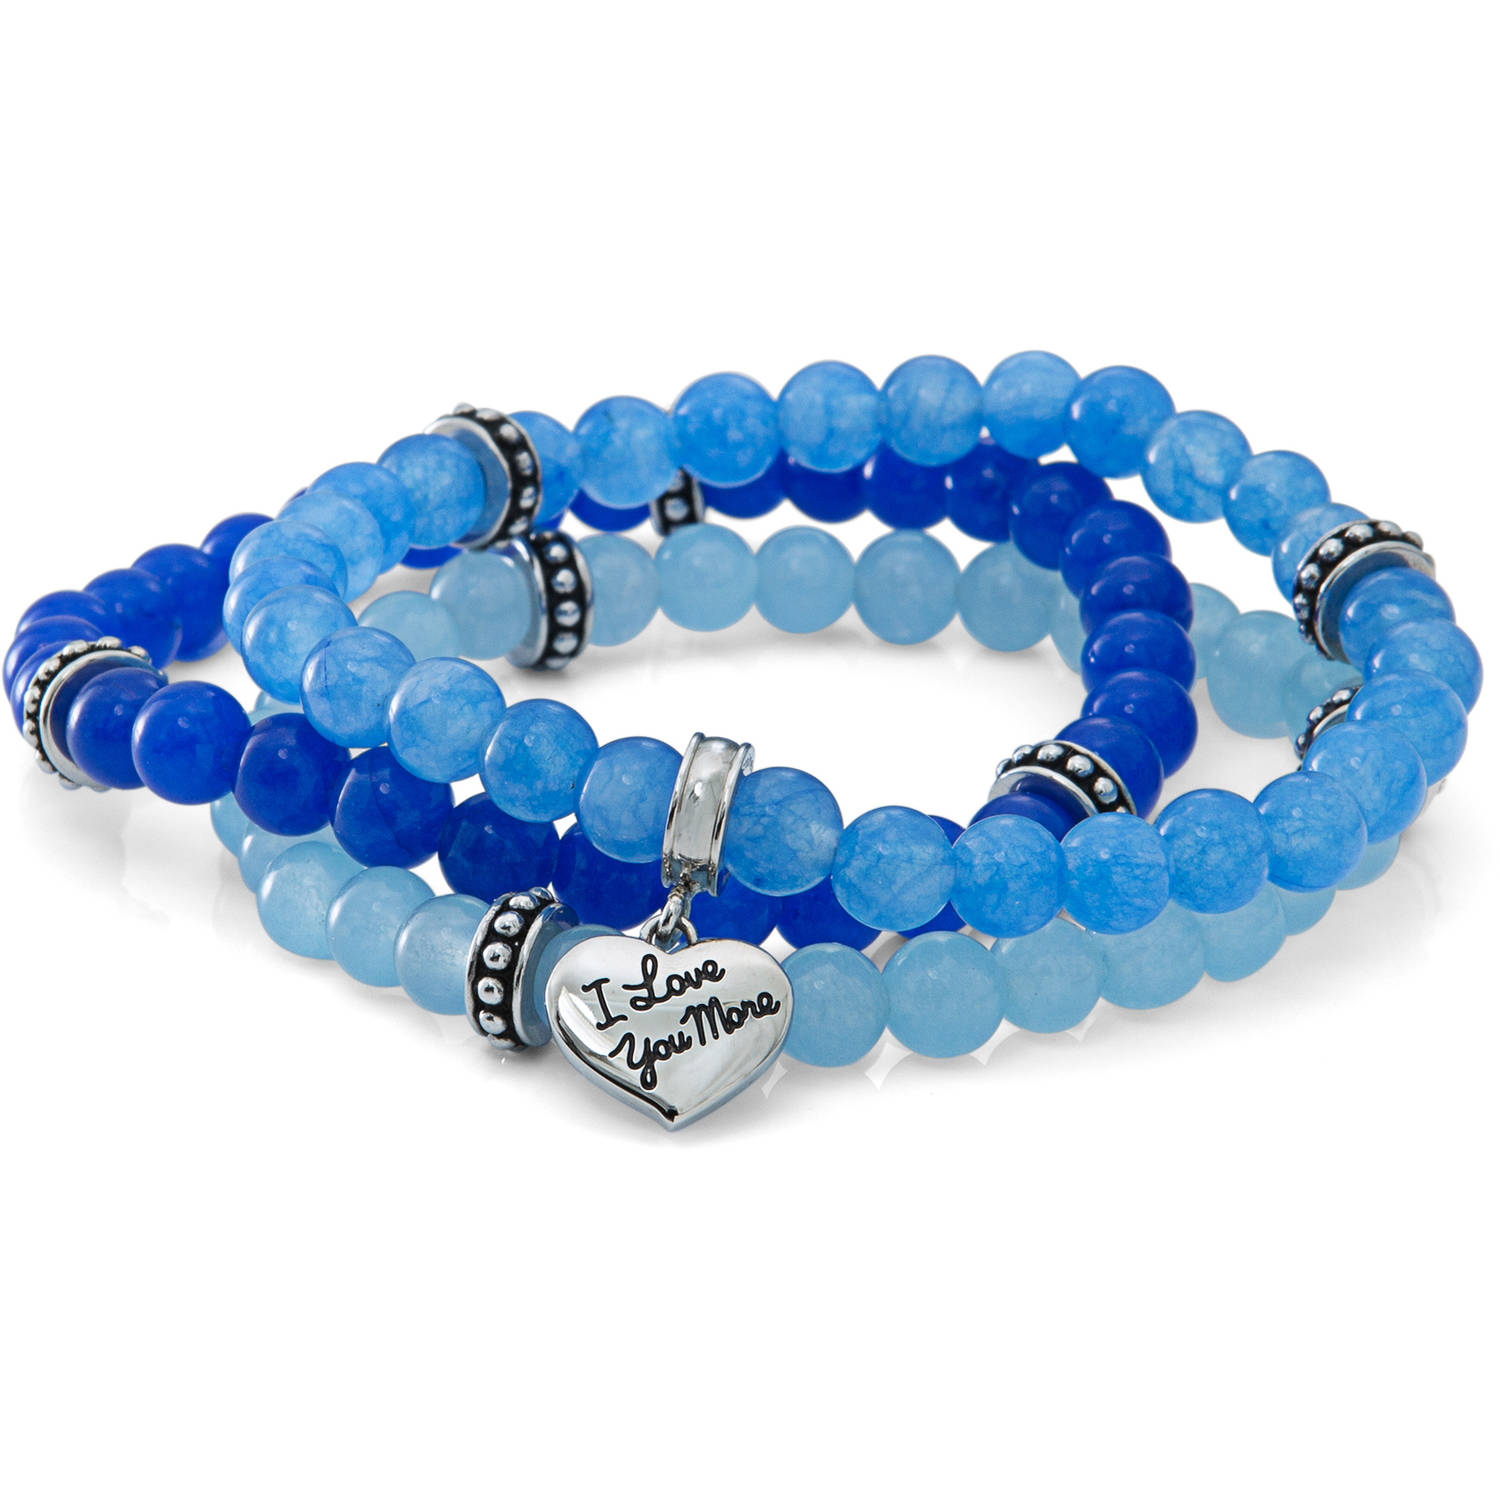 "Connections From Hallmark Stainless Steel ""So Special So Loved"" Blue Gemstone Stretch Bracelet Set"